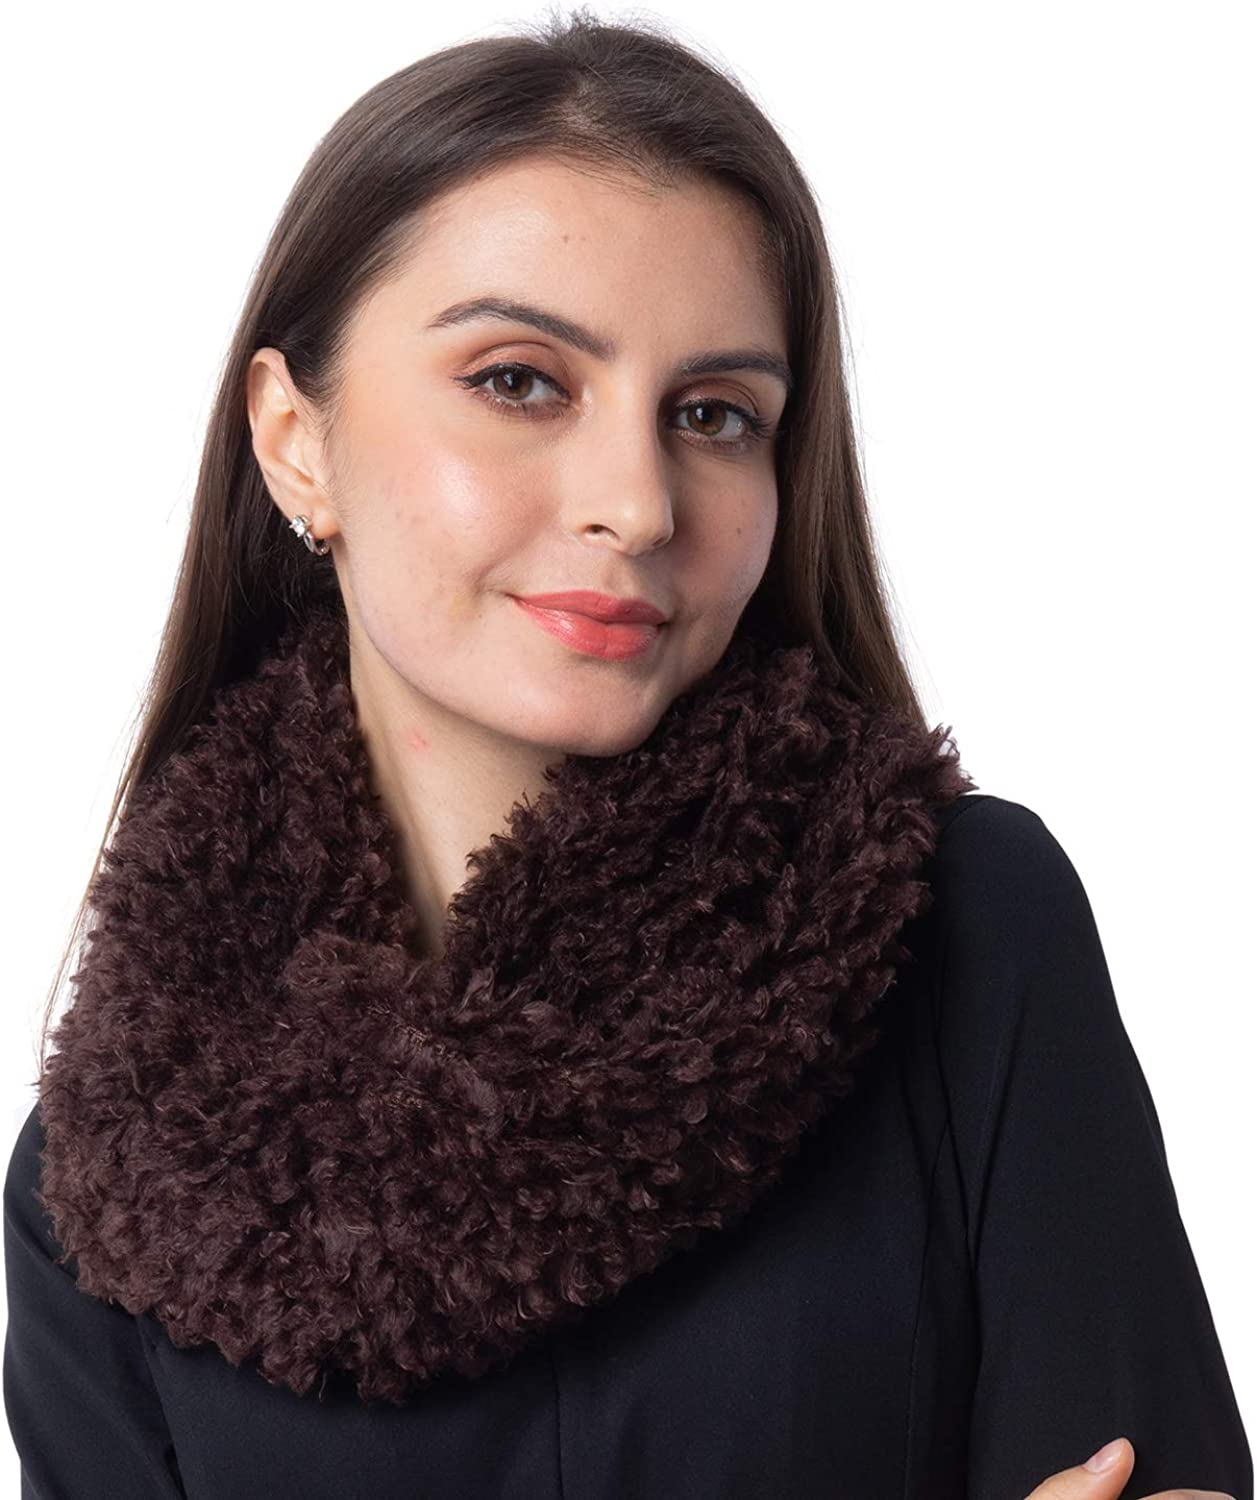 Brown 100% Polyester Twisted Infinity Faux Fur Lightweight Scarf Wrap Hijabs for Women 15x11